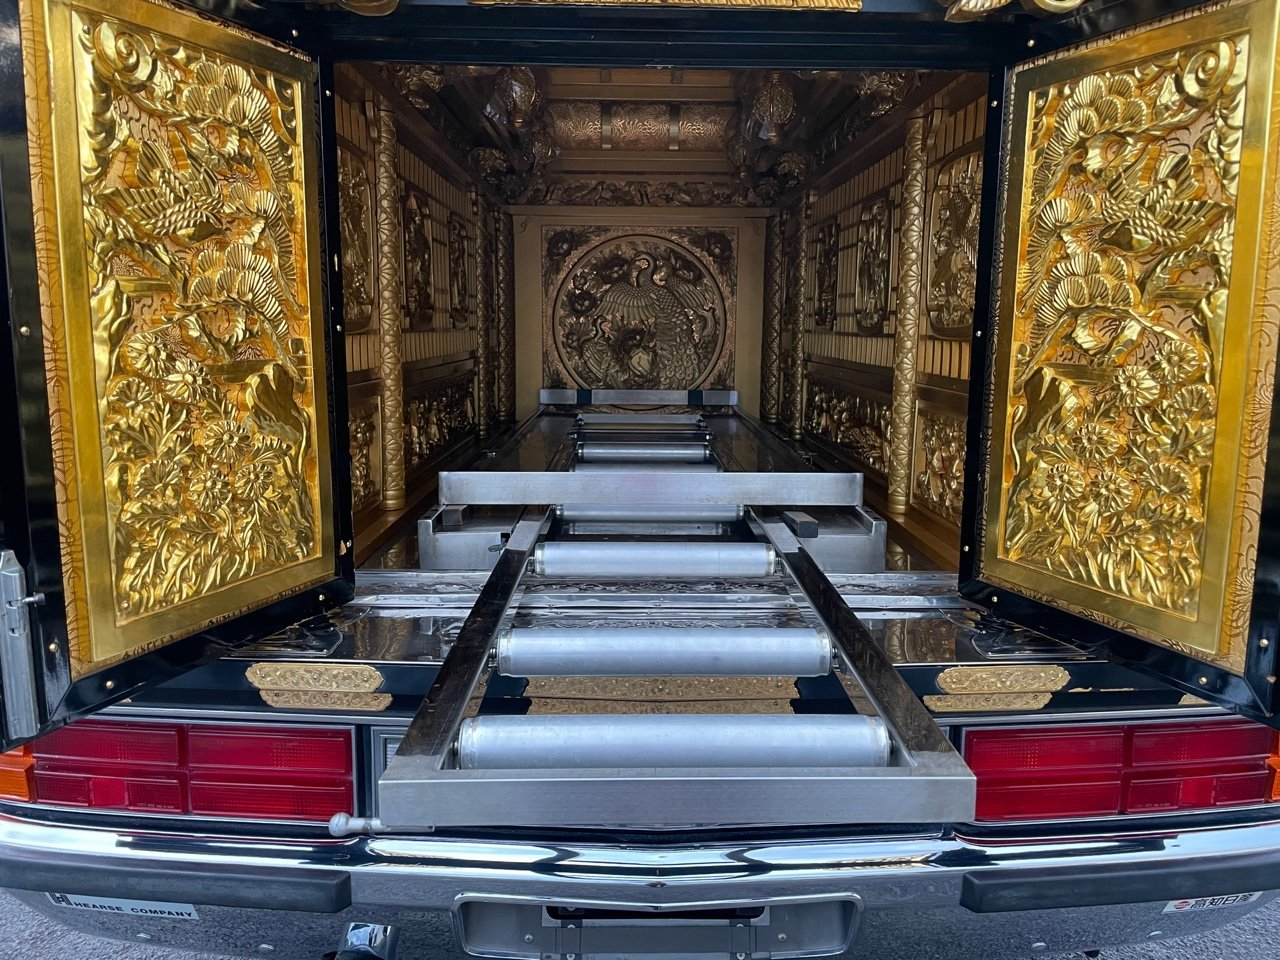 1987 NISSAN PRESIDENT RARE OLD VIP 4.4 BUDDHIST HEARSE ASIAN For Sale (picture 4 of 6)